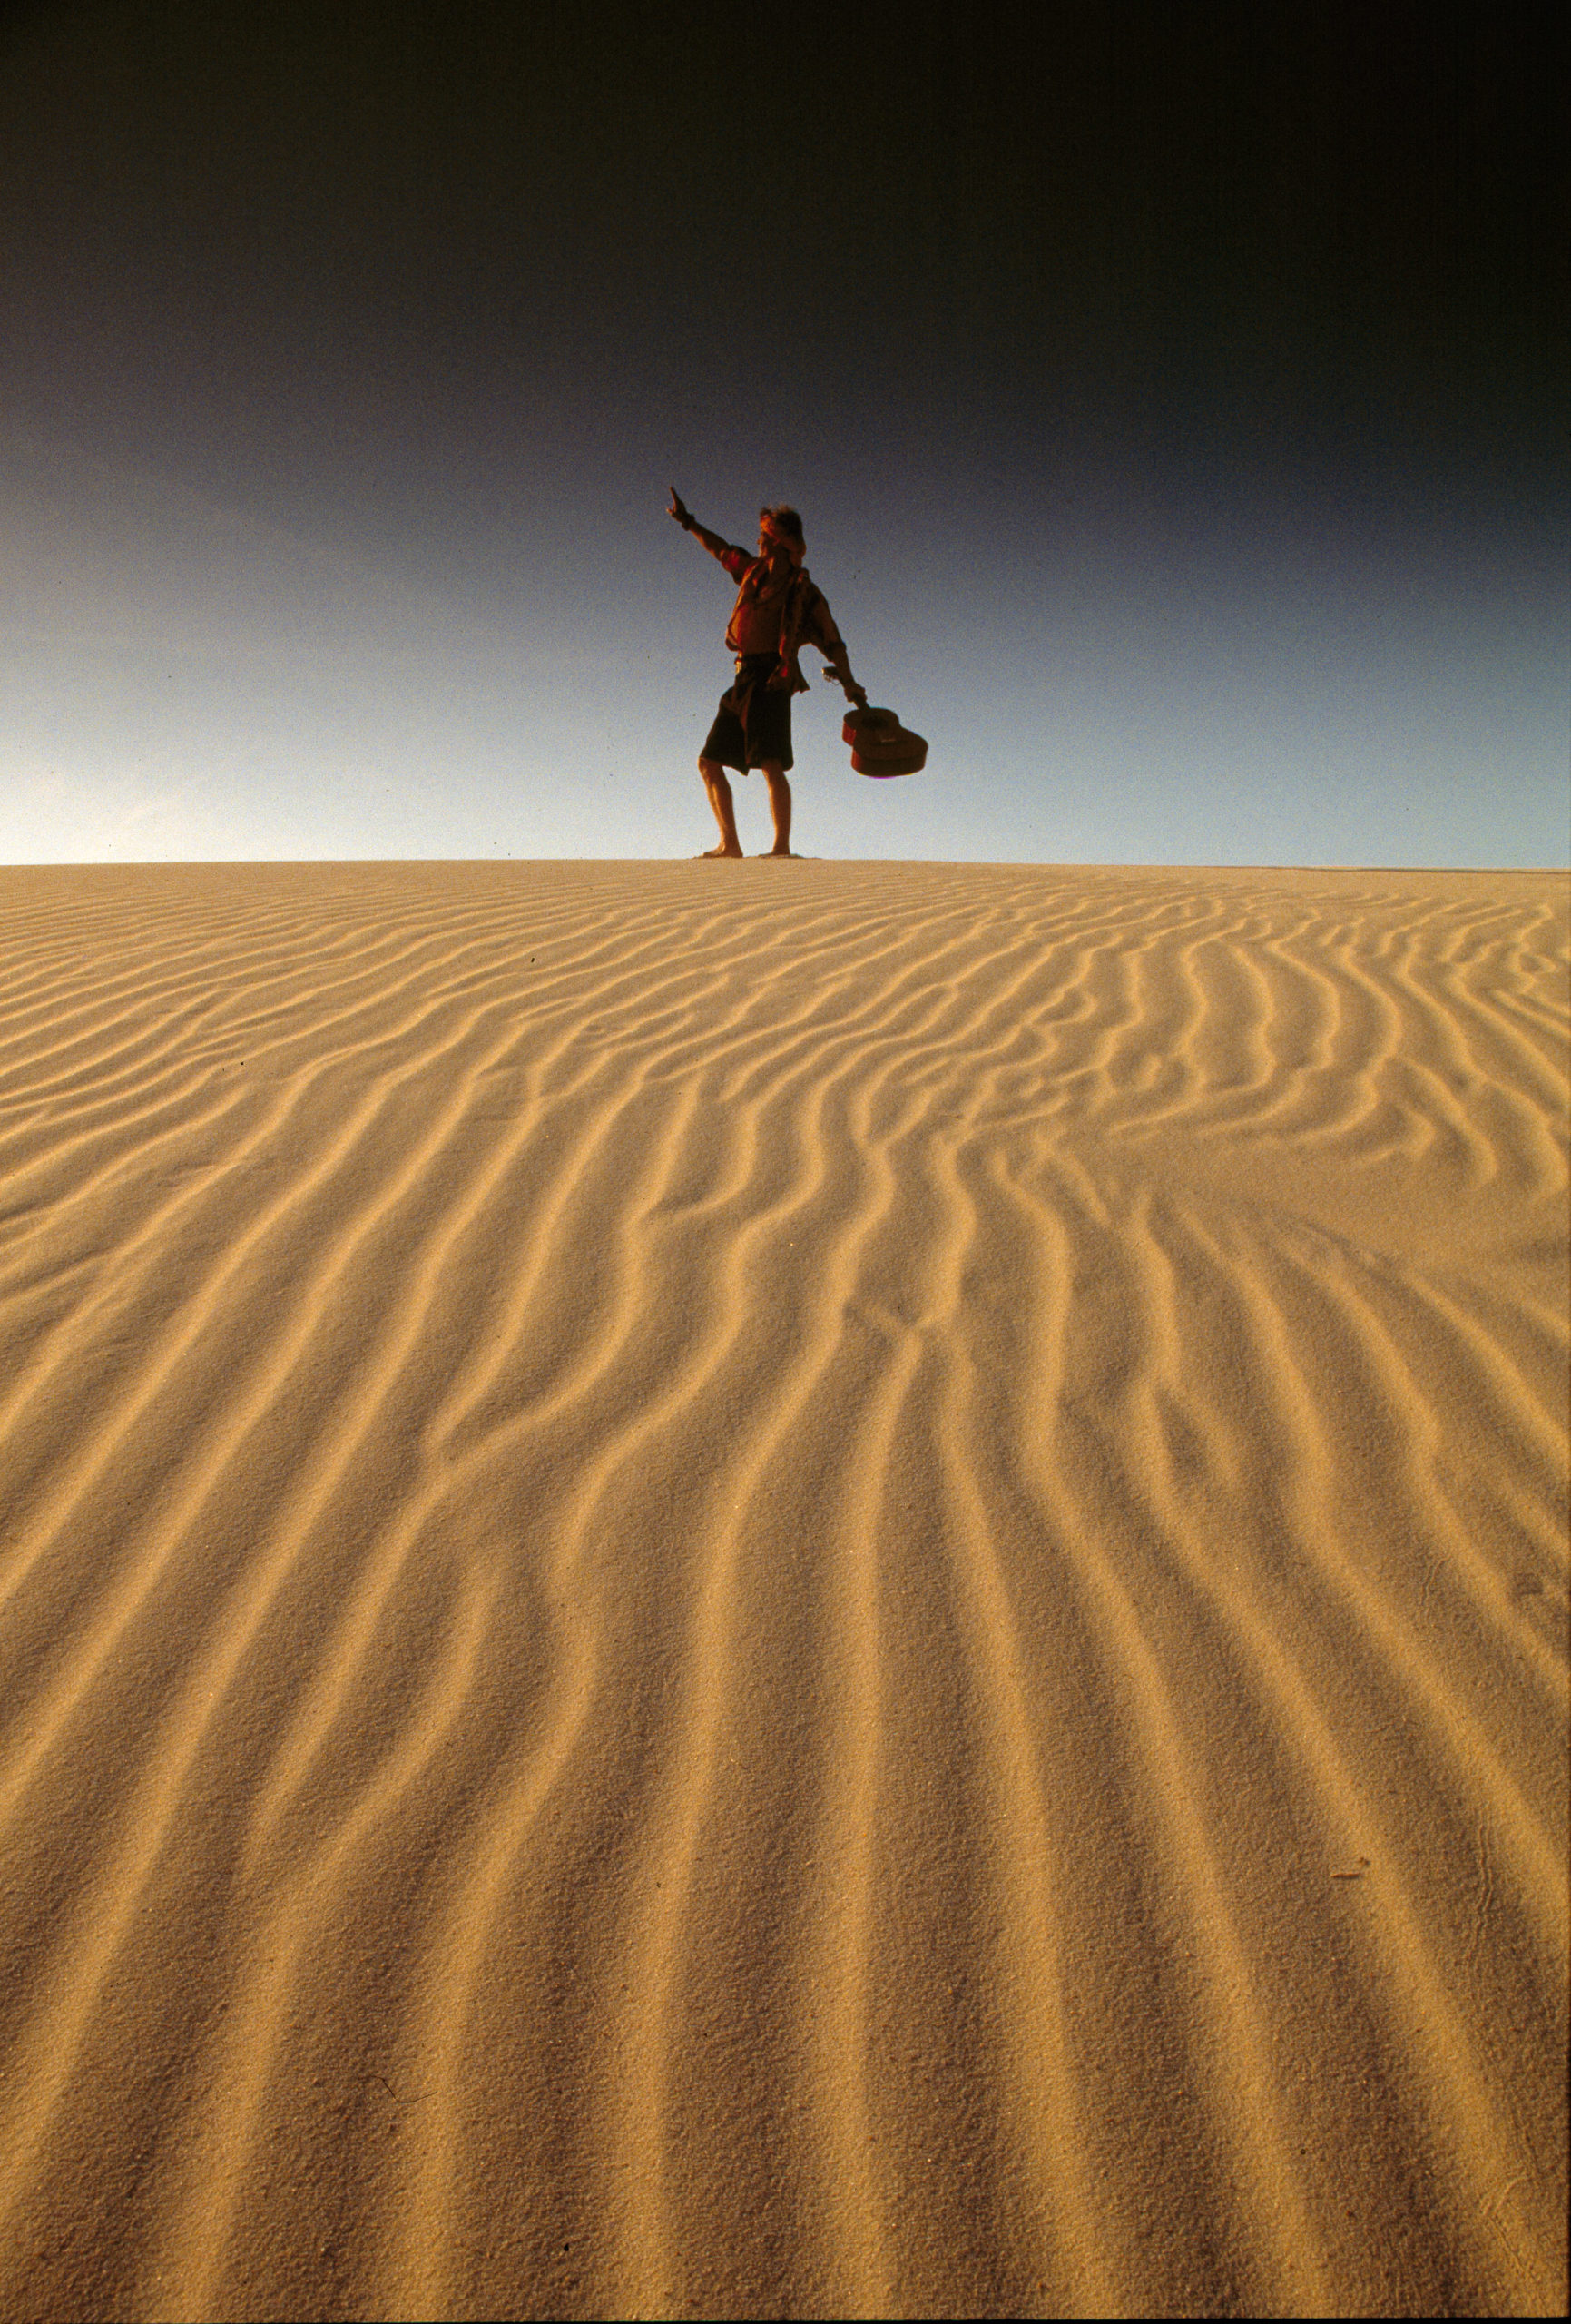 Man in a desert swinging a guitar